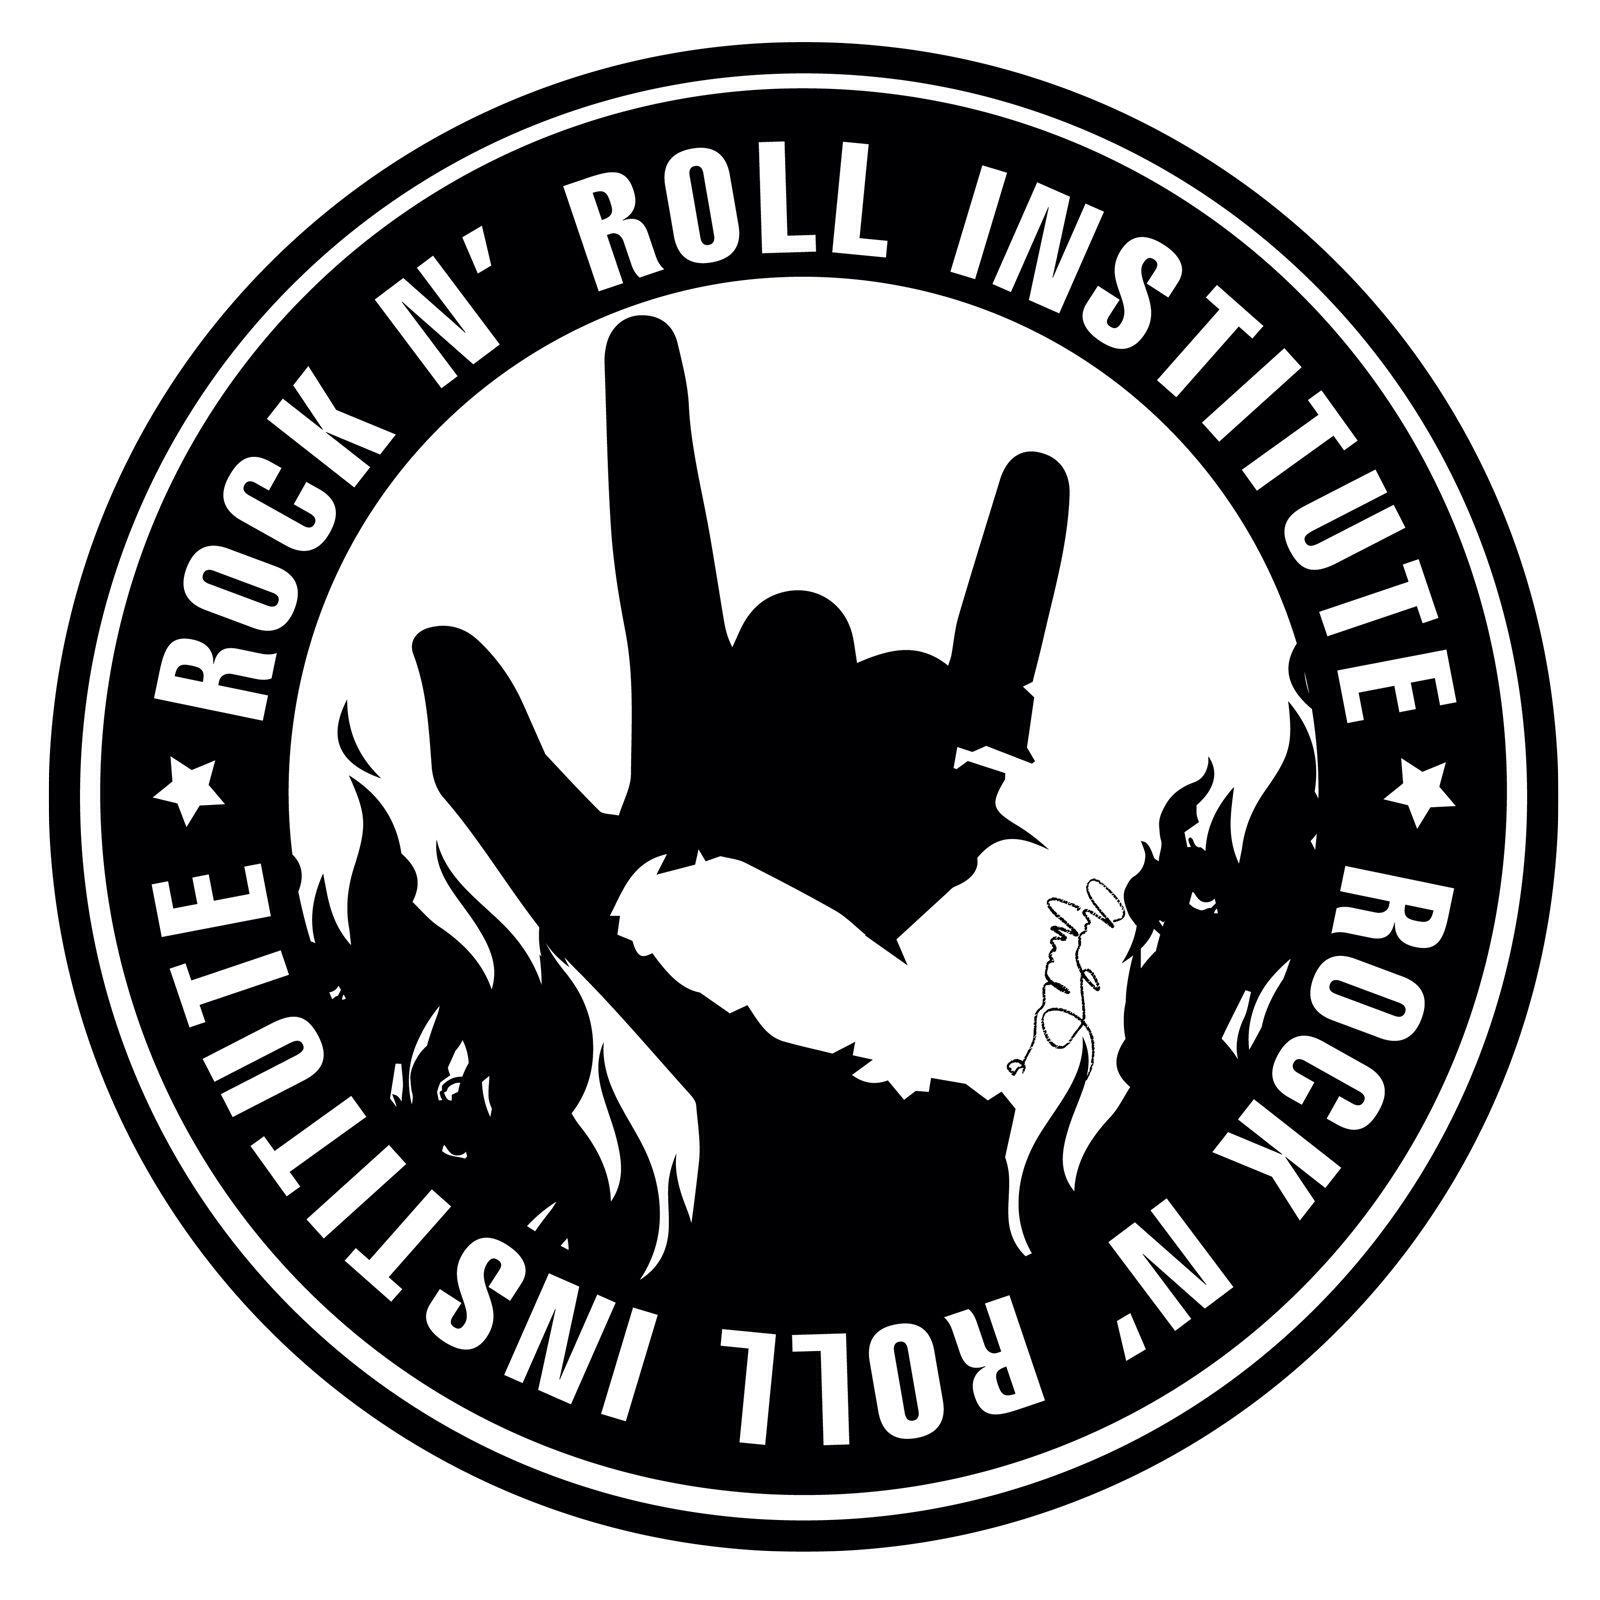 Image from http://andywhorehall.com/wp-content/uploads/Rock-n-Roll-Institute_Logos-Final_SOCIALMEDIA_A.jpg.